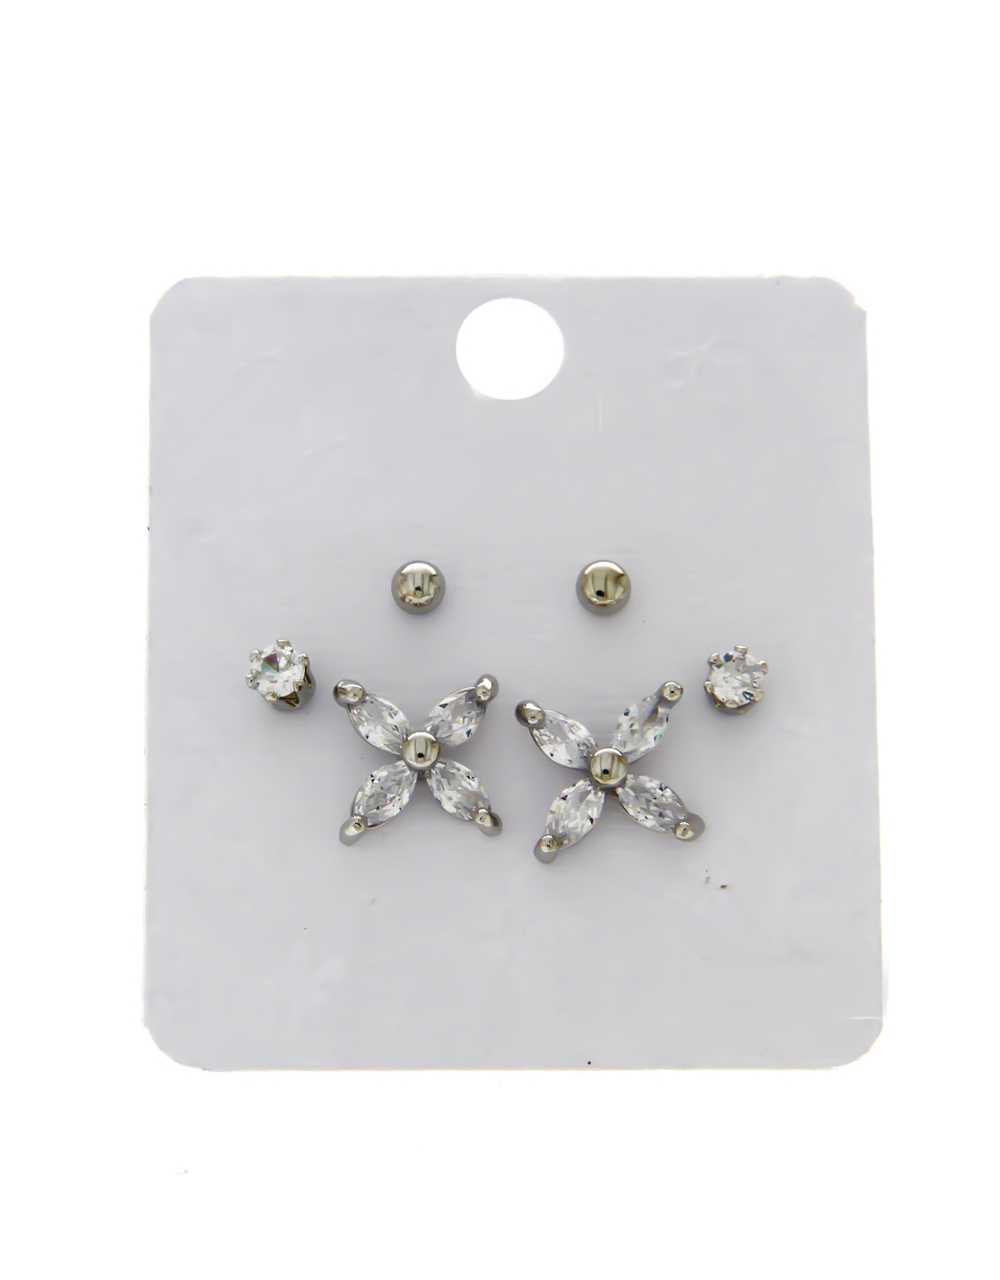 Floral Design Silver Finish Combo Ear Stud For Girls